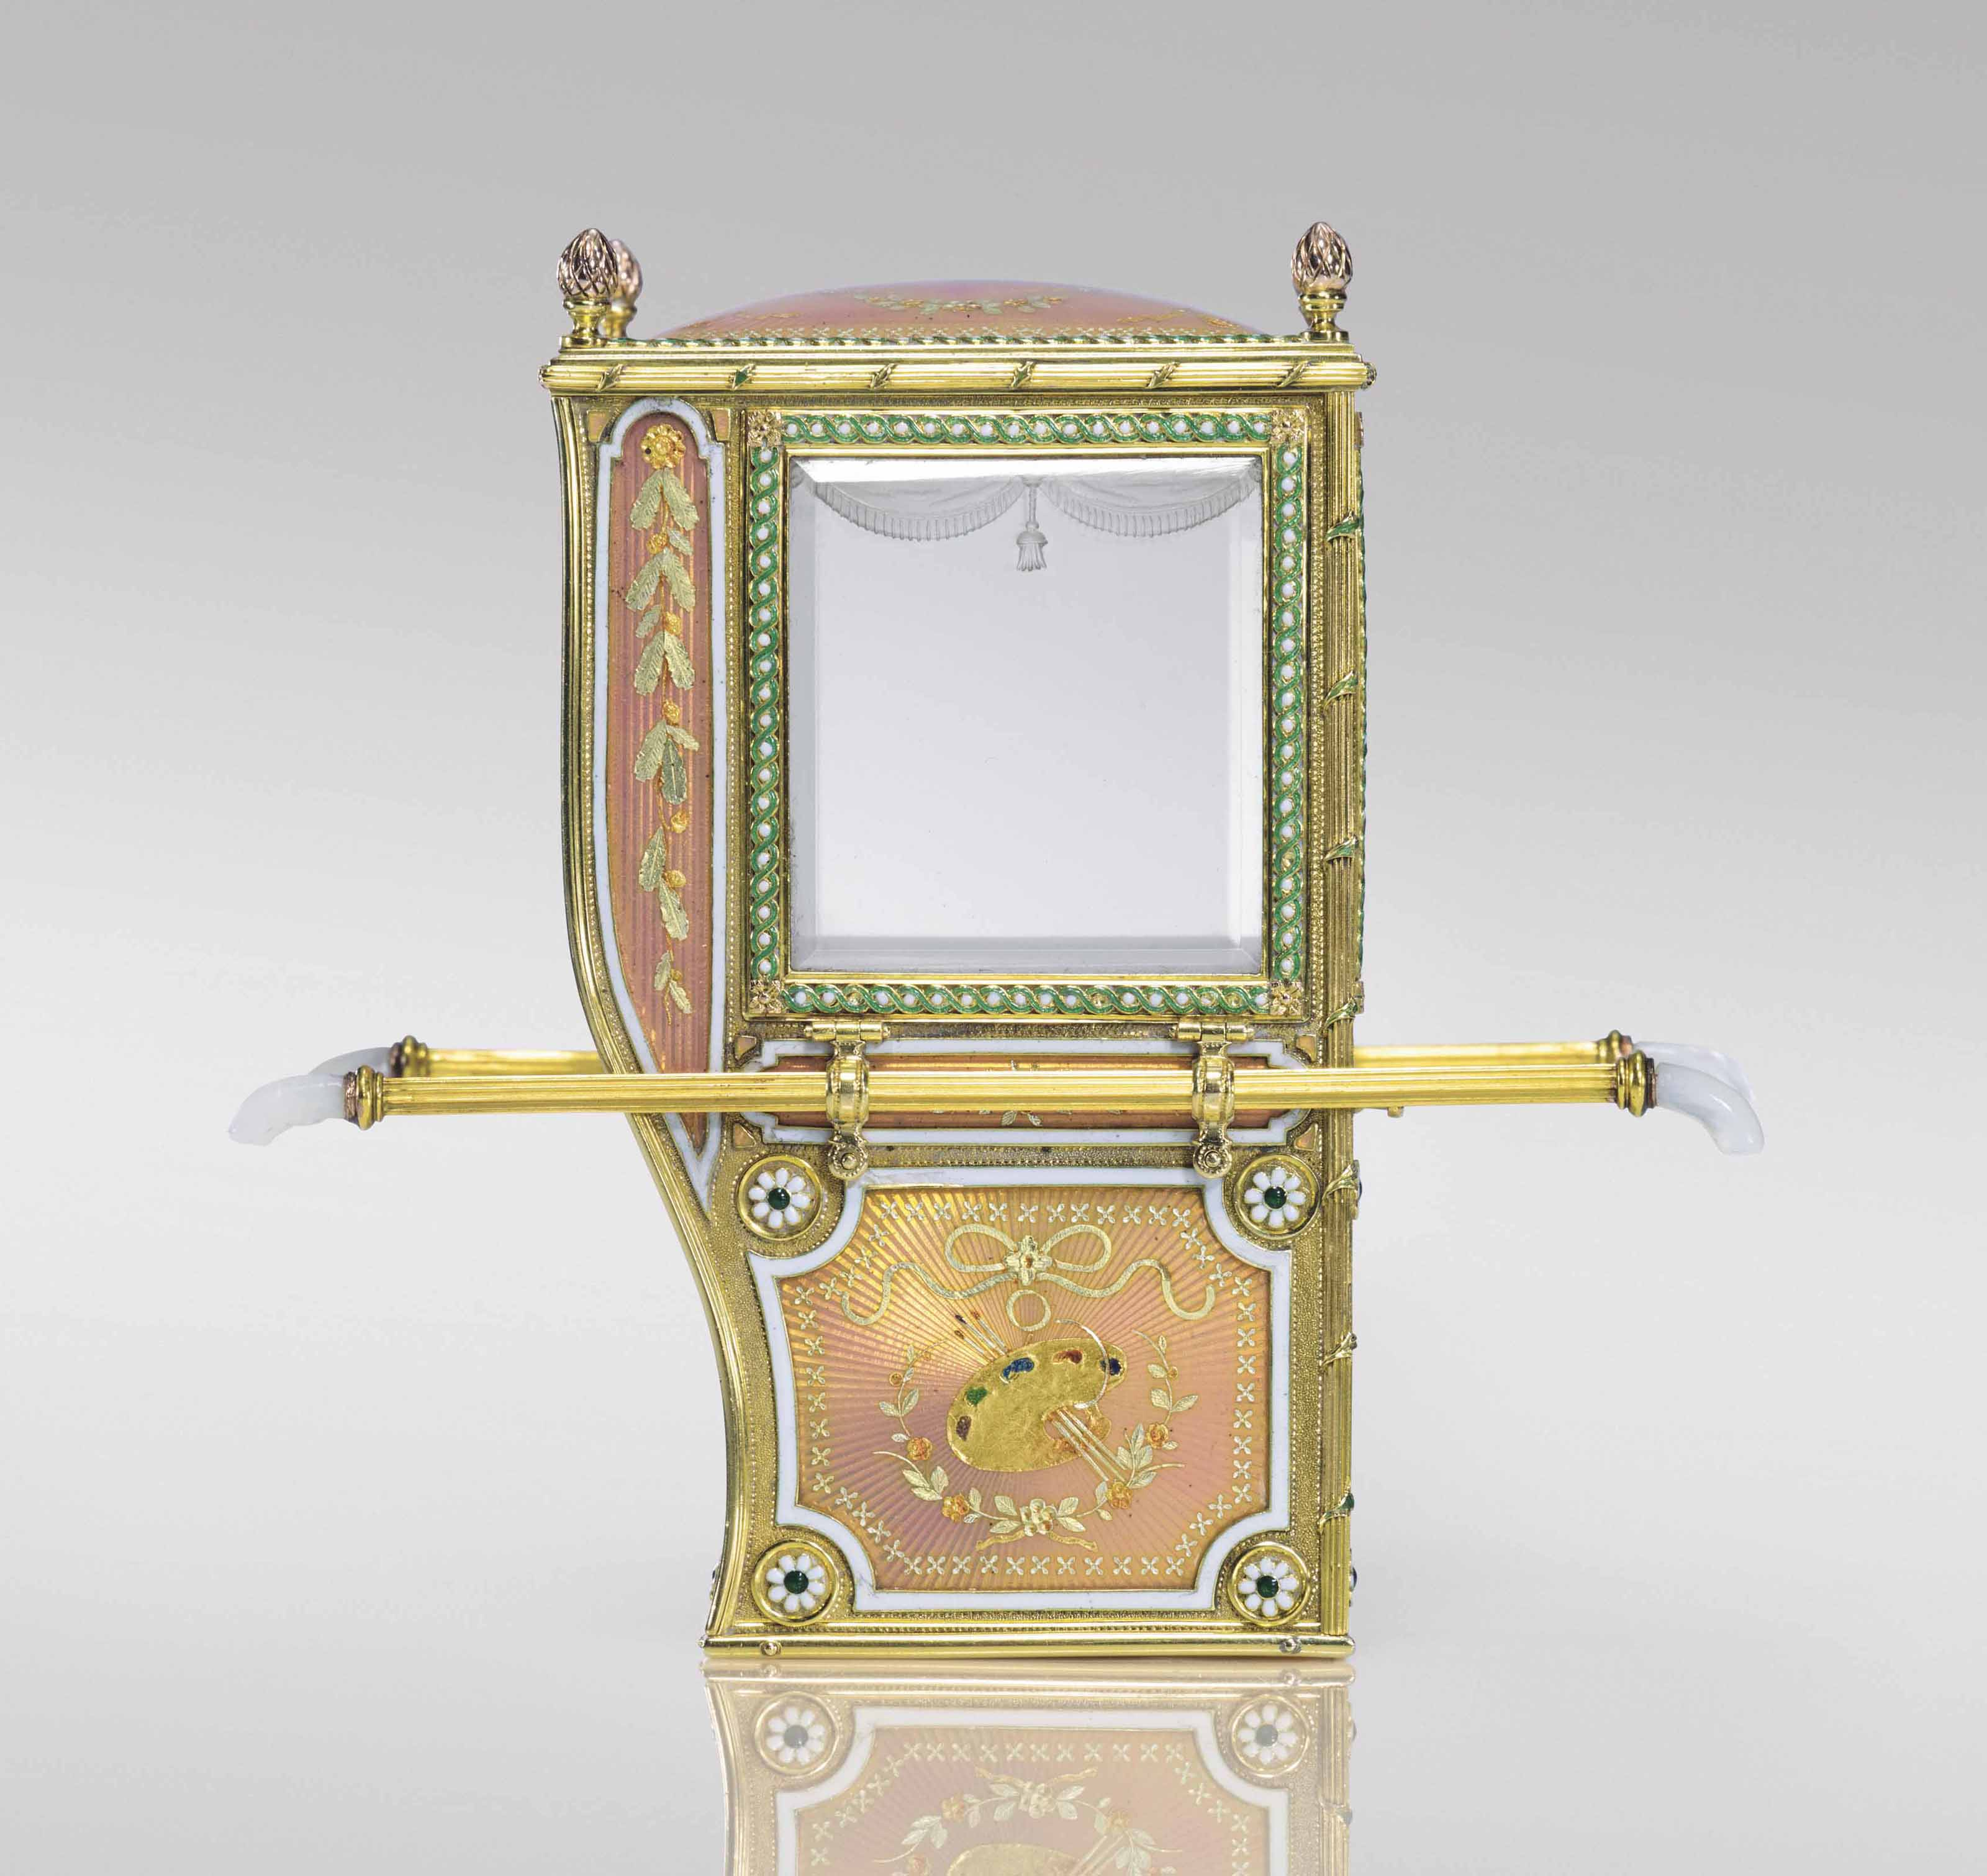 AN EXCEPTIONAL AND RARE GUILLOCHÉ ENAMEL AND VARICOLOUR GOLD MINIATURE MODEL OF A SEDAN CHAIR